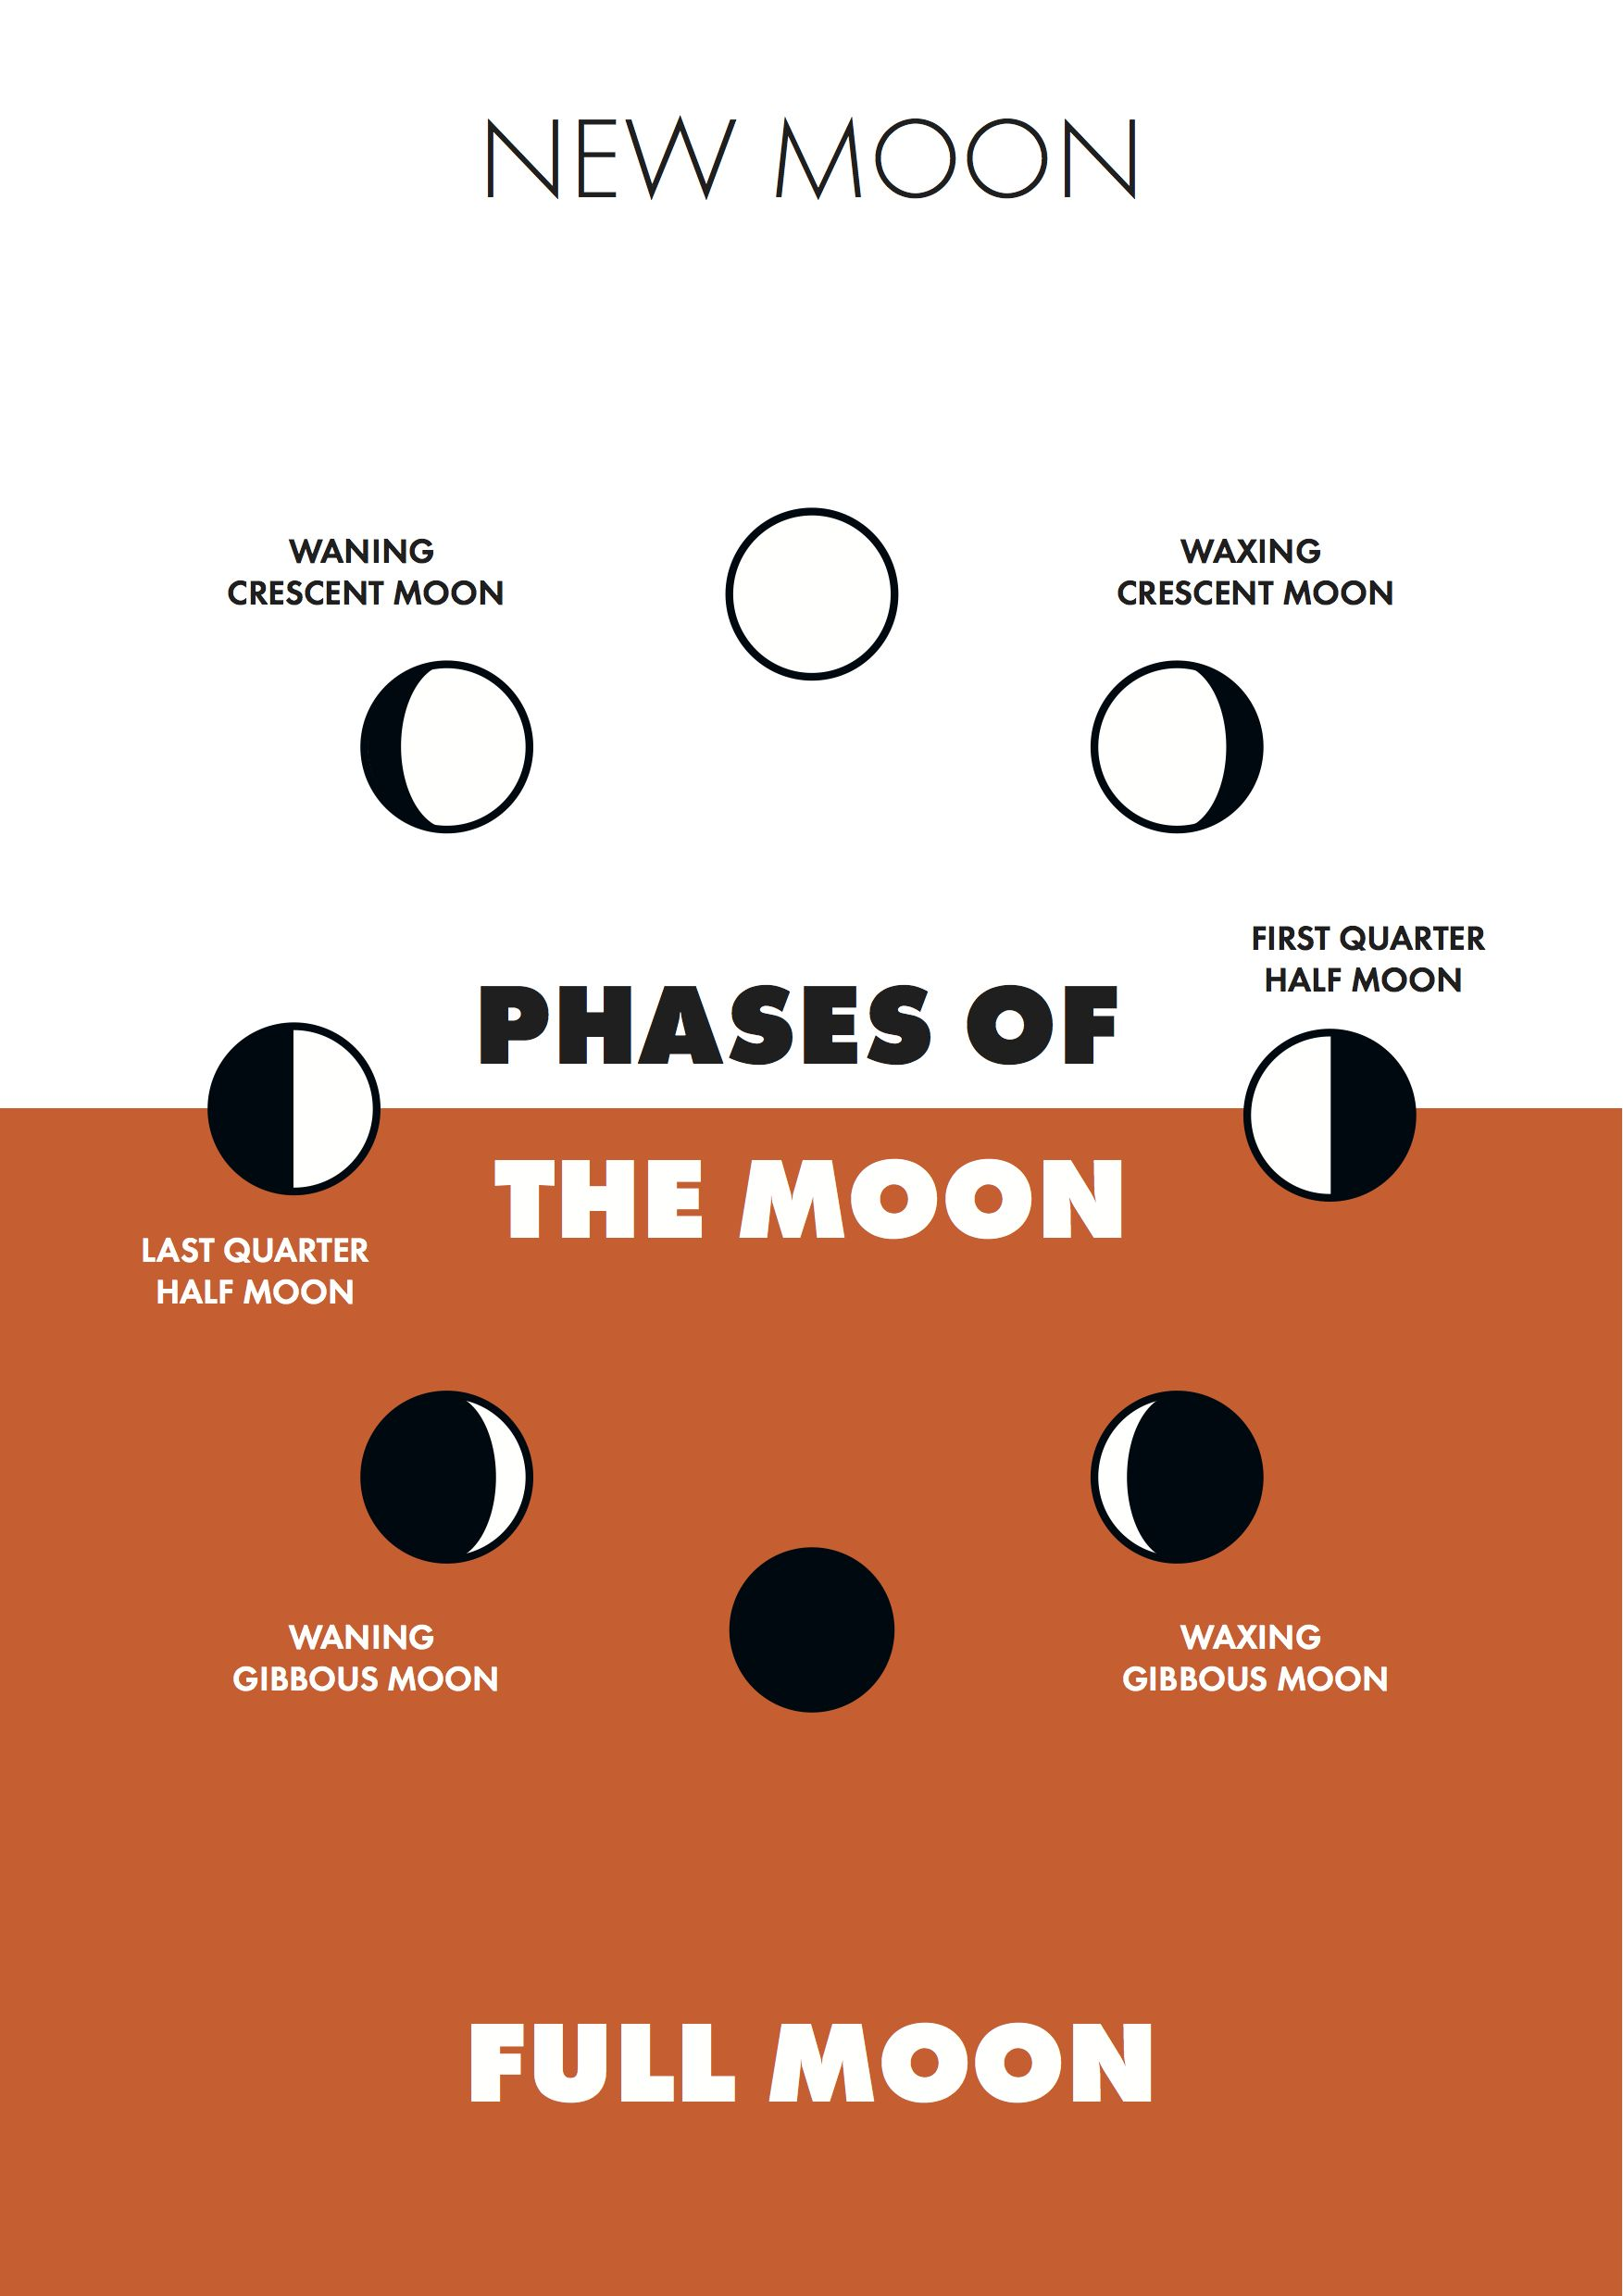 Phases Of The Moon By Andrei Bocan